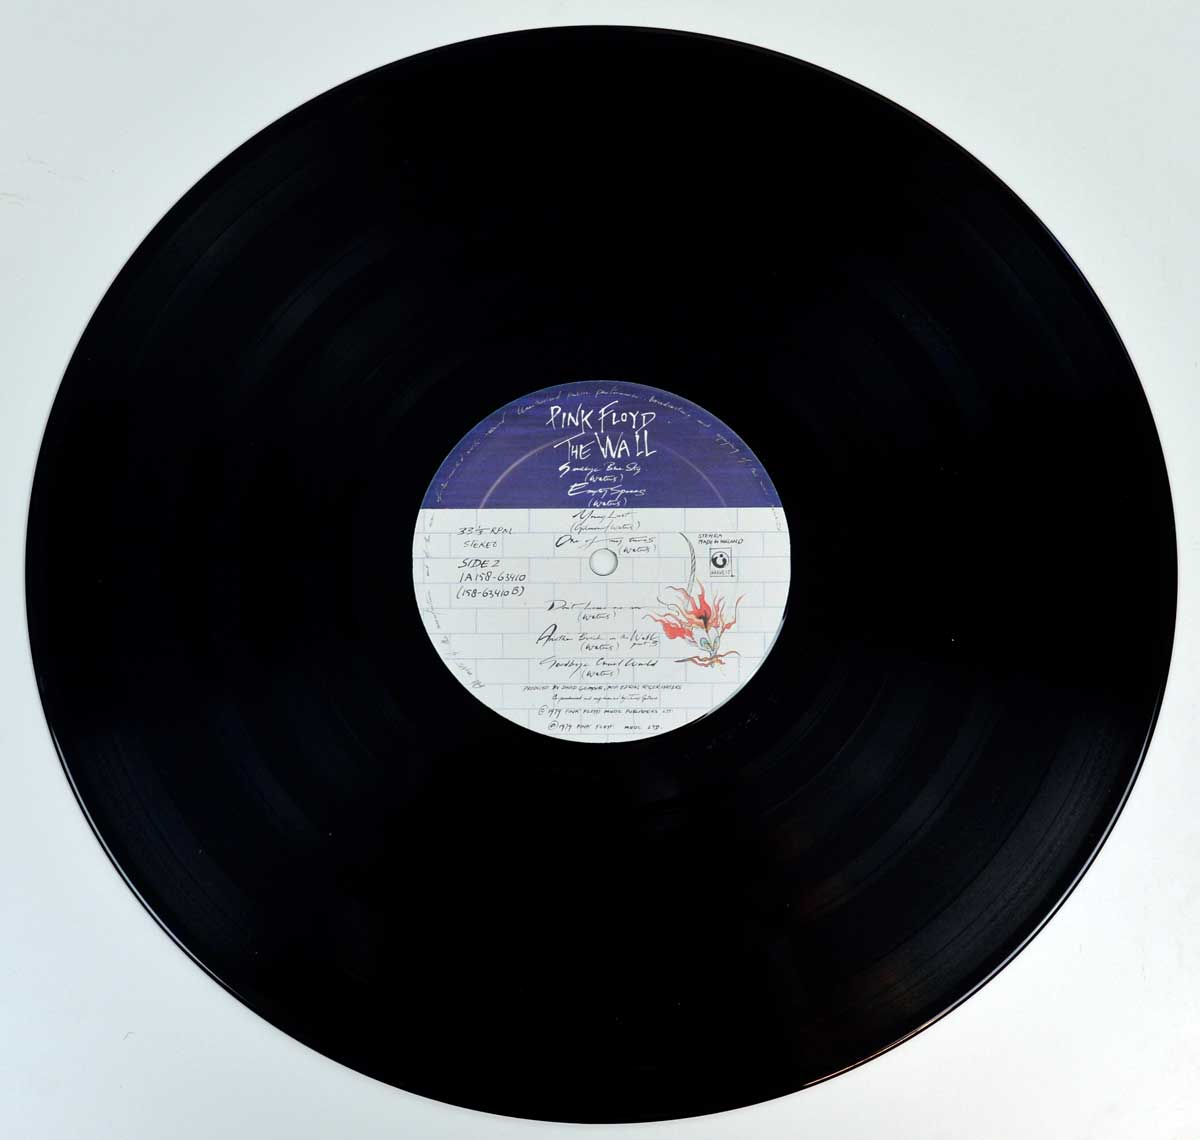 Photo of record 1   of PINK FLOYD - The Wall ( The Netherlands )